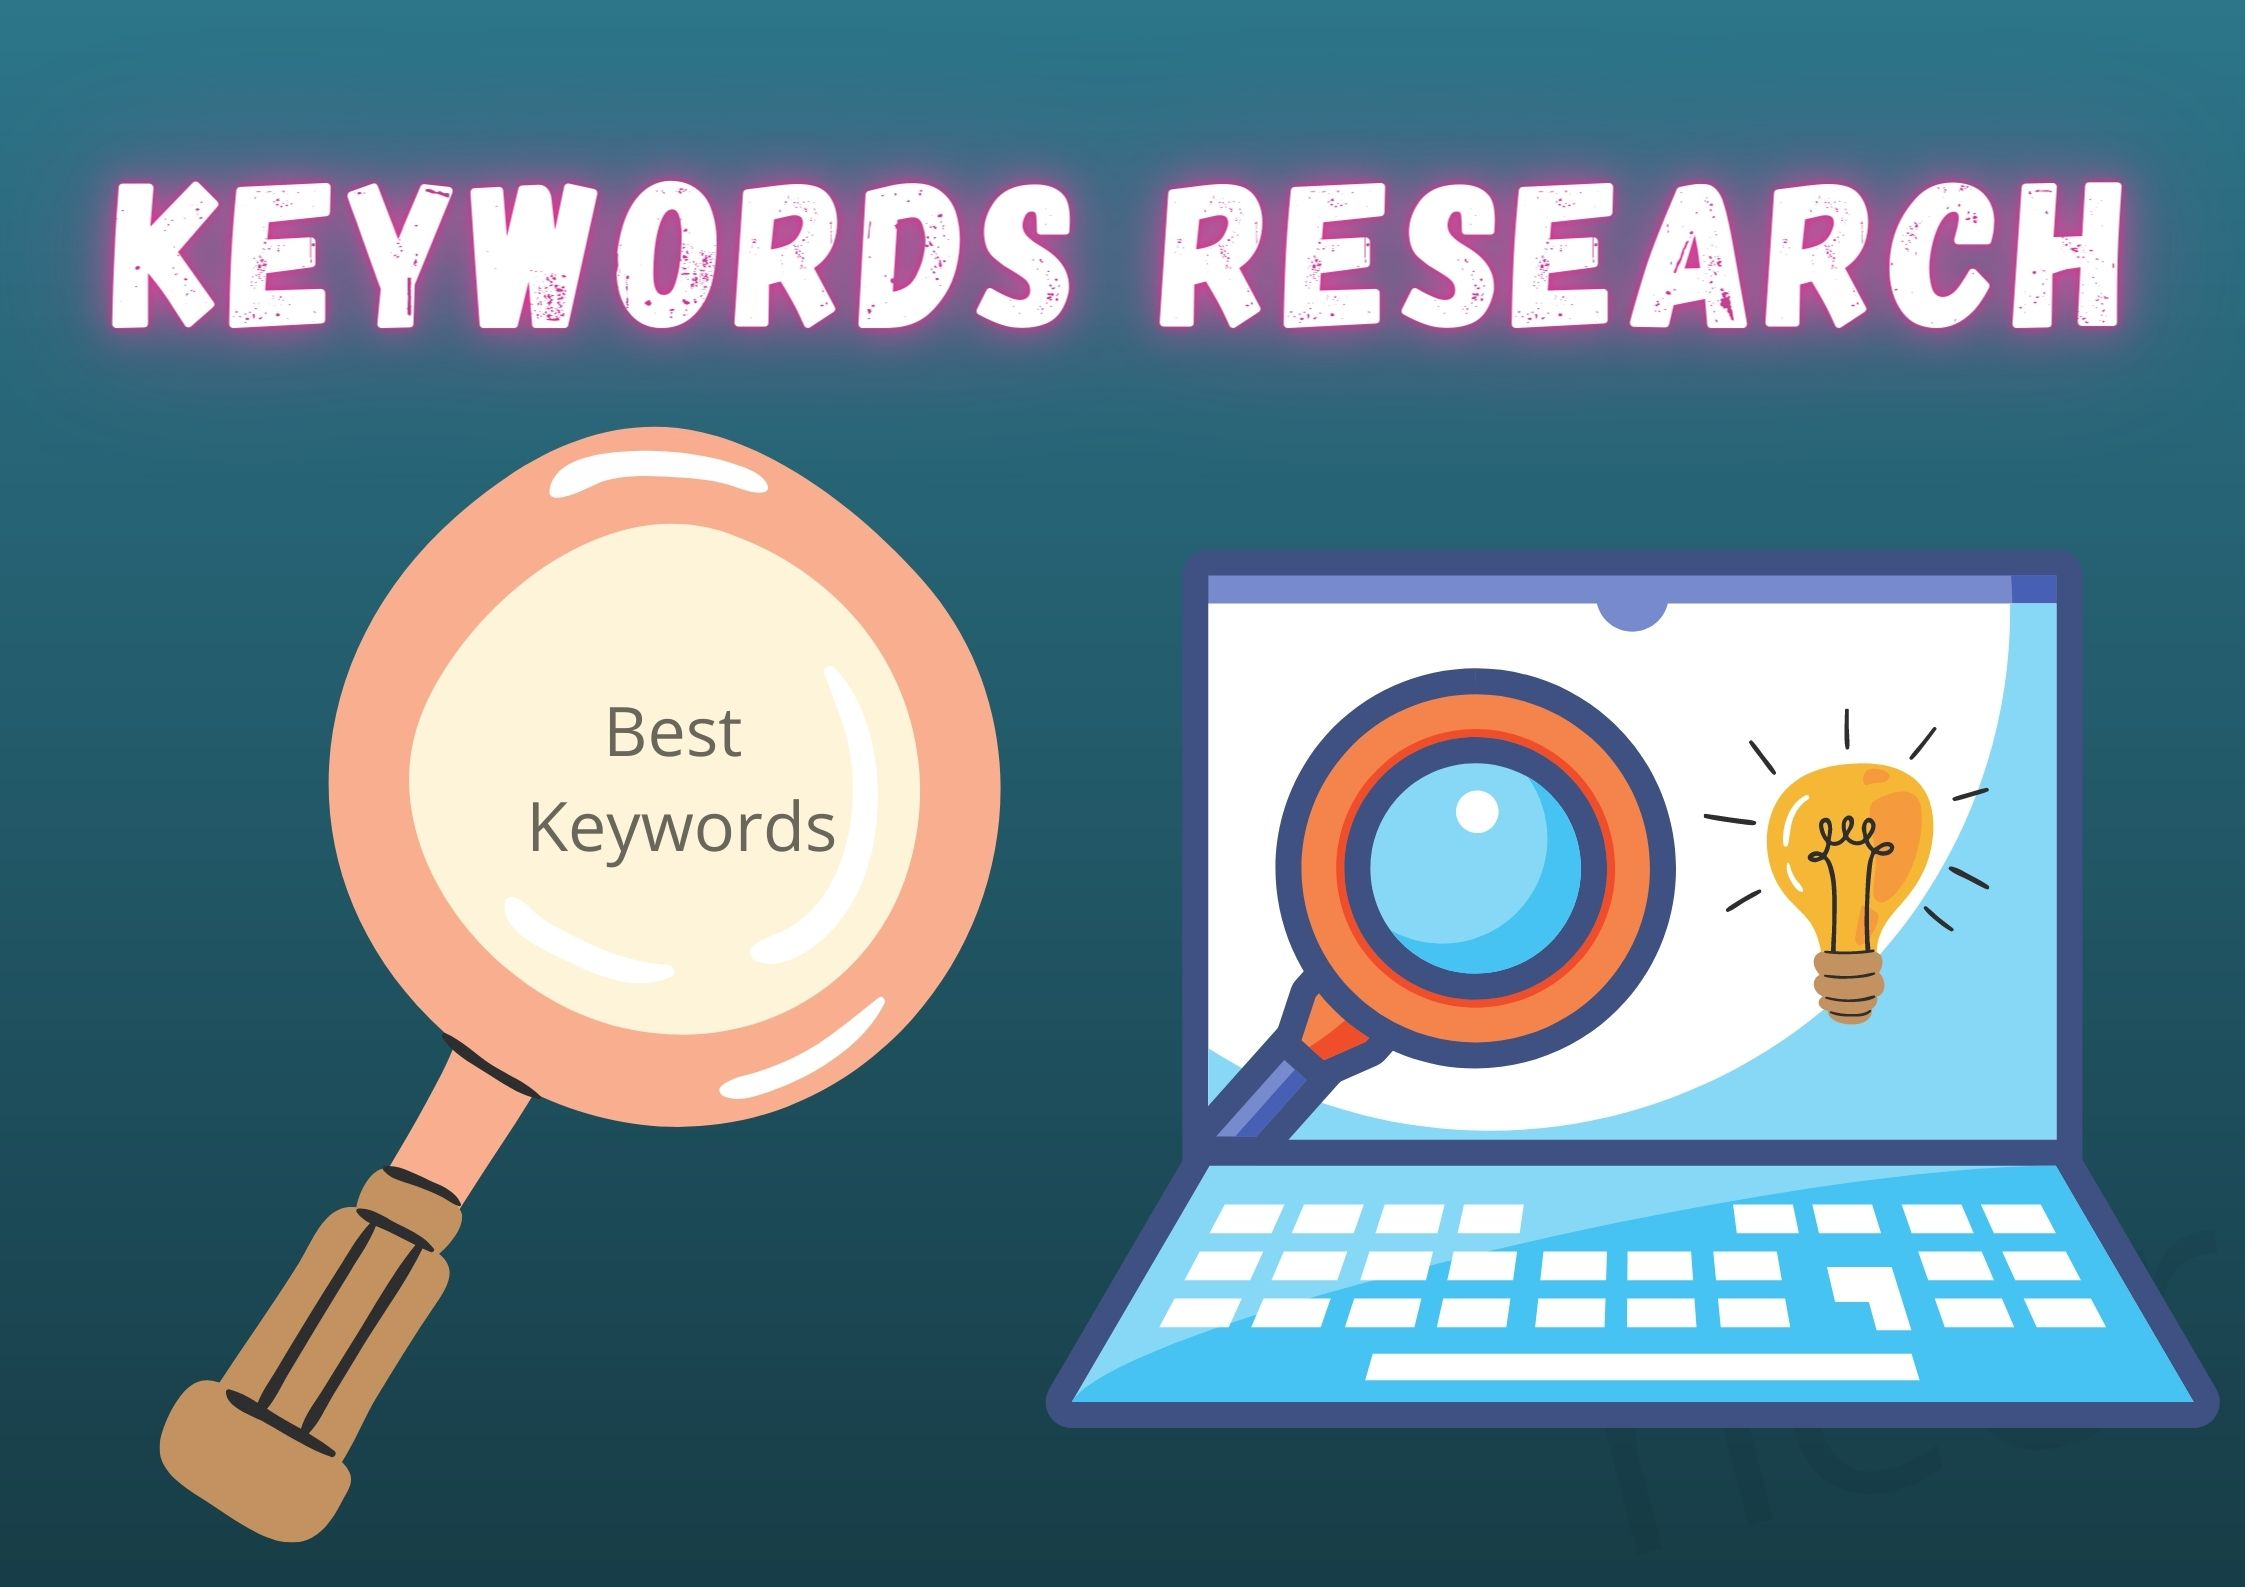 I will find best keywords for your website